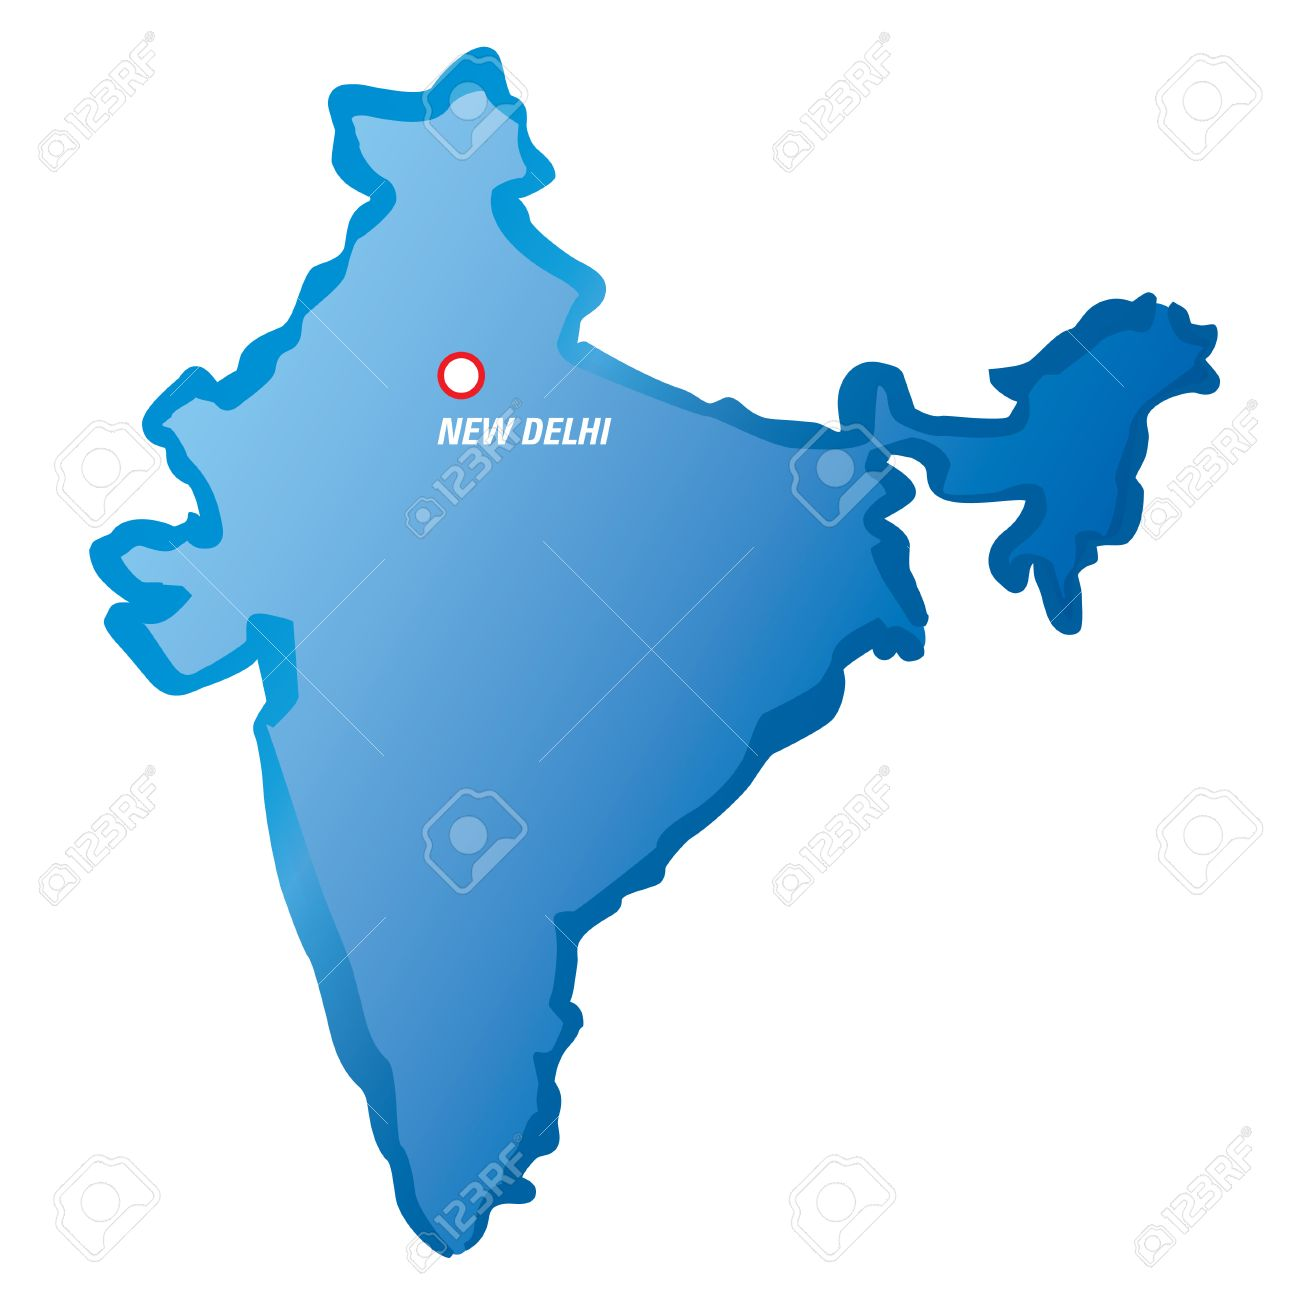 Blue Map Of India And New Delhi Royalty Free Cliparts Vectors And